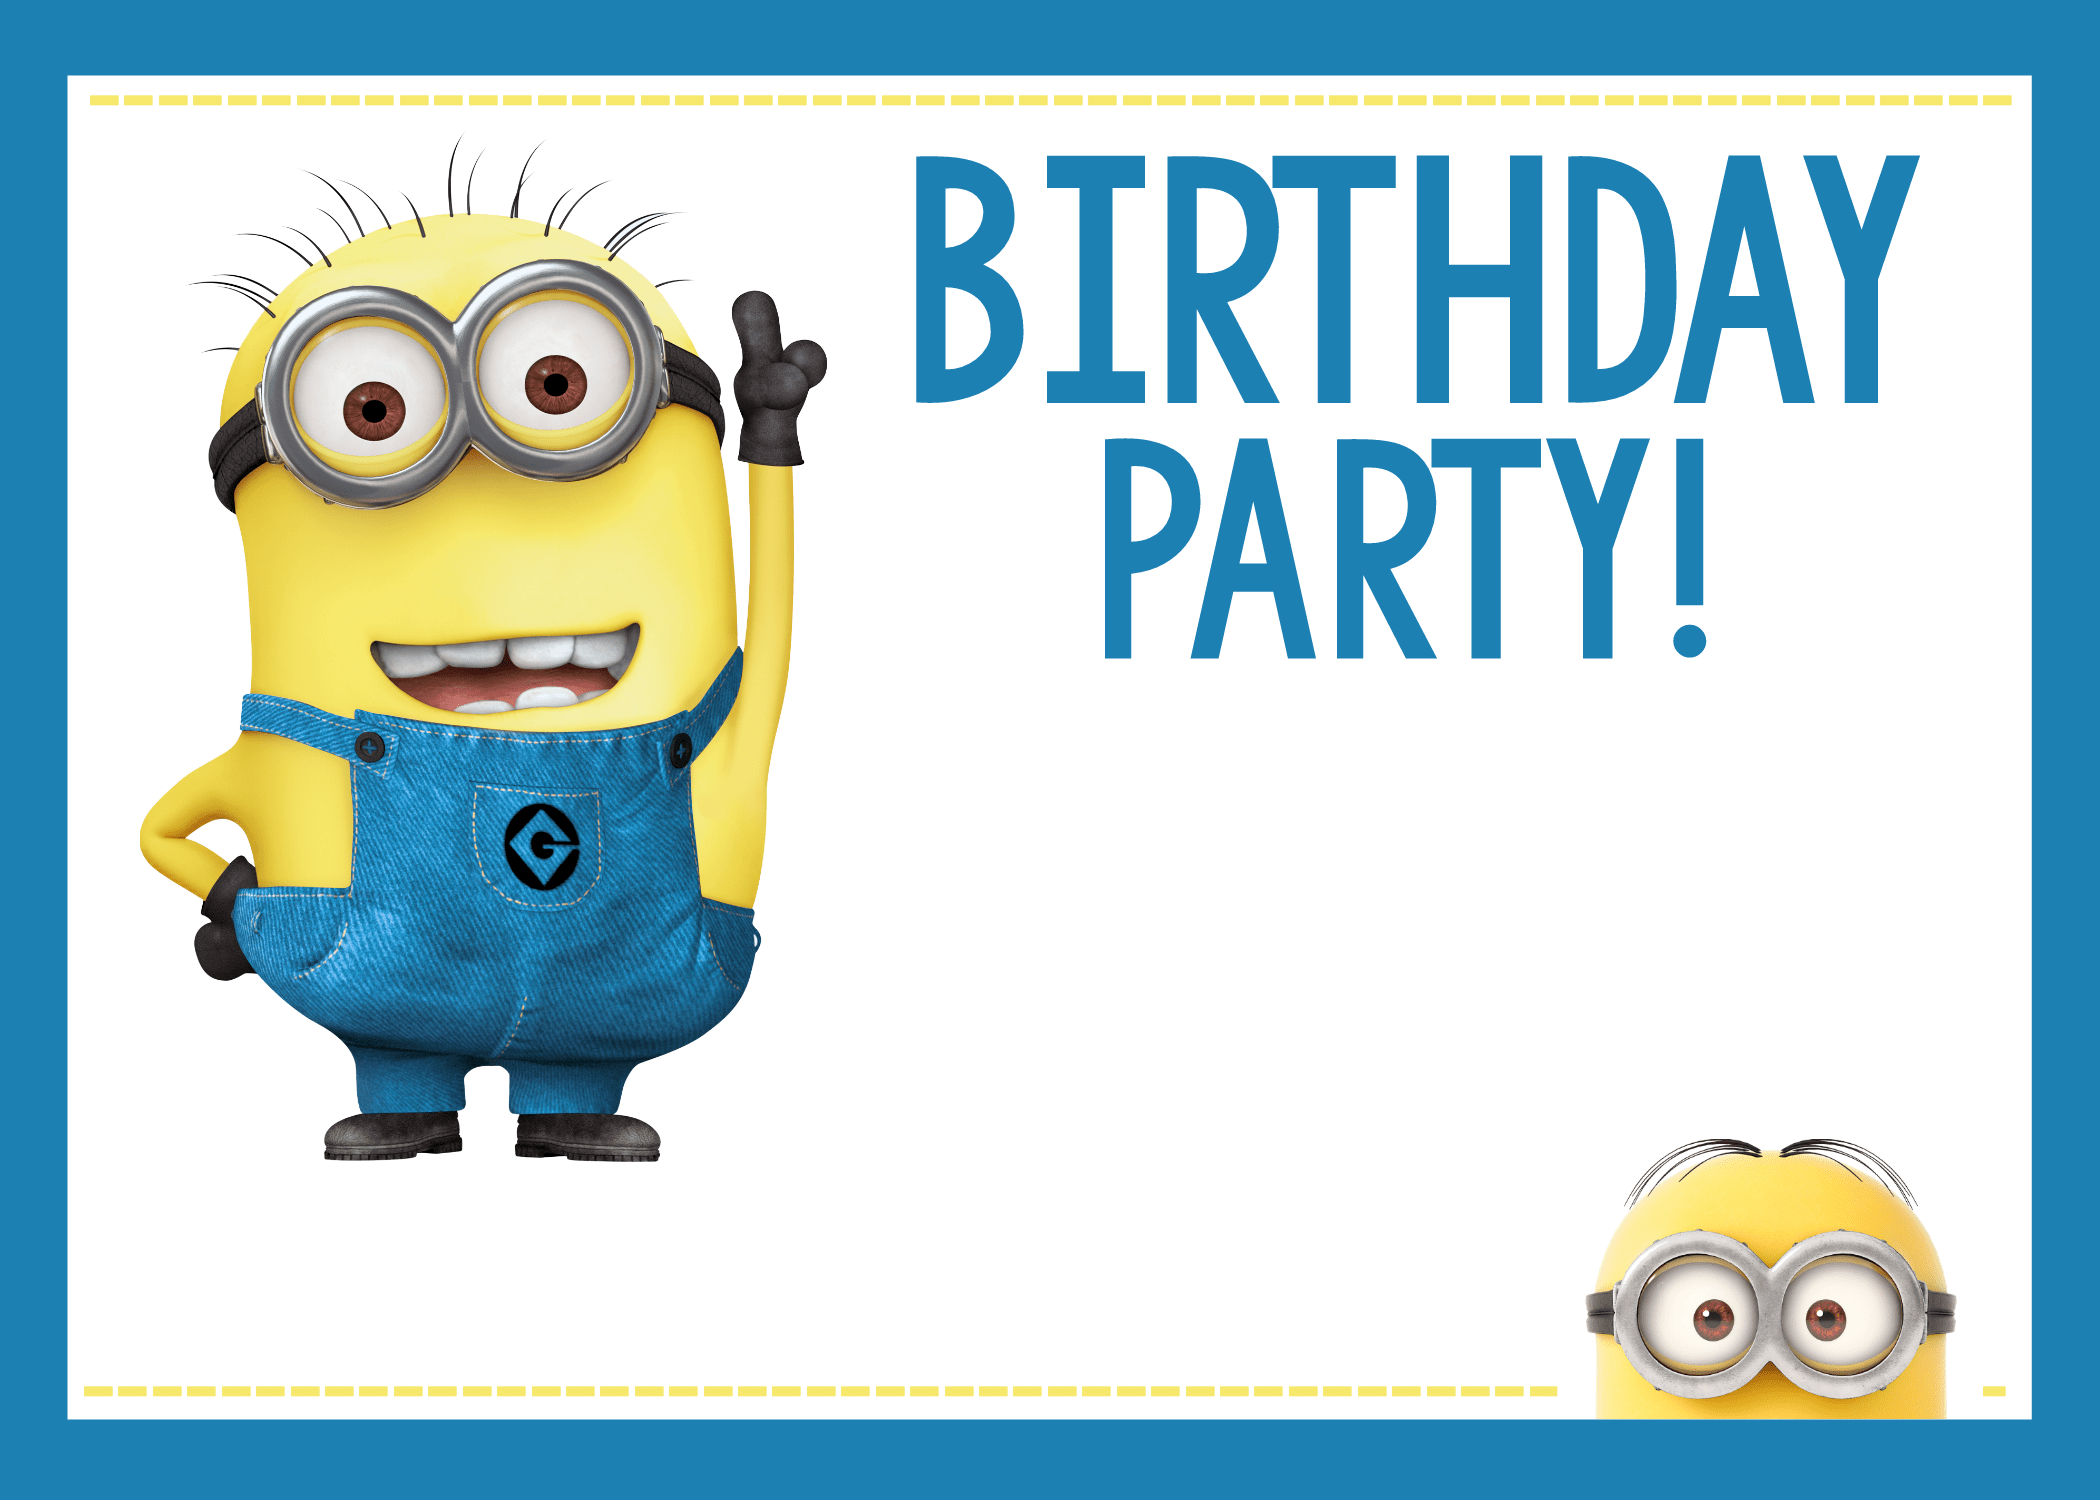 Fun Minion Party Ideas For A Birthday Squared